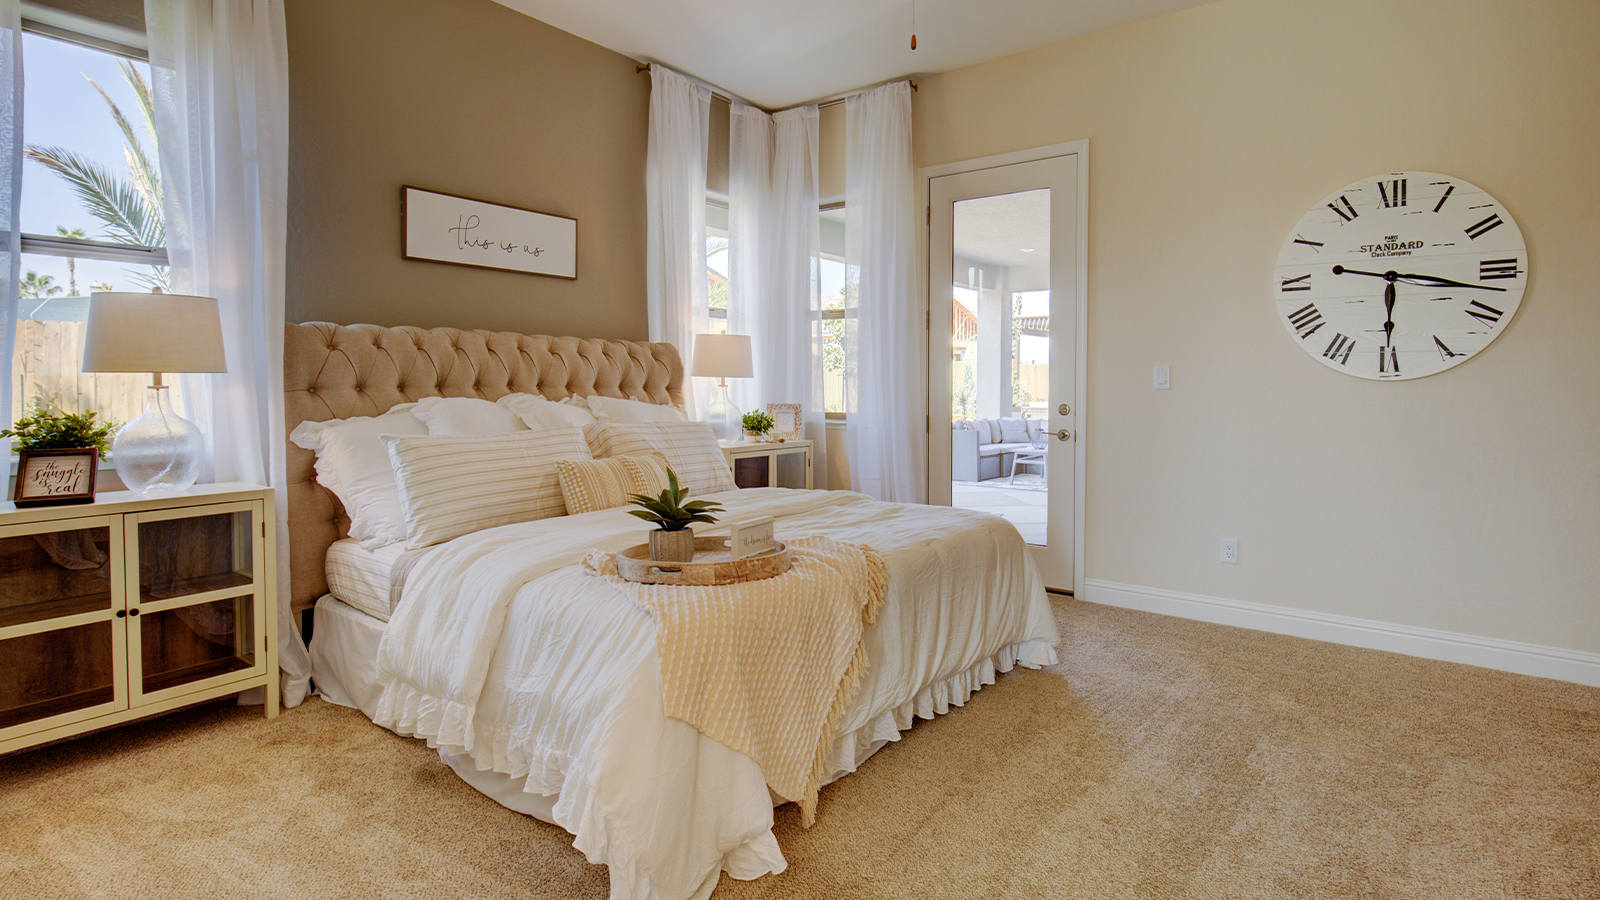 A plush tufted headboard and fluffy white and natural toned bedding create an inviting space to sleep in this Bella owner's suite.